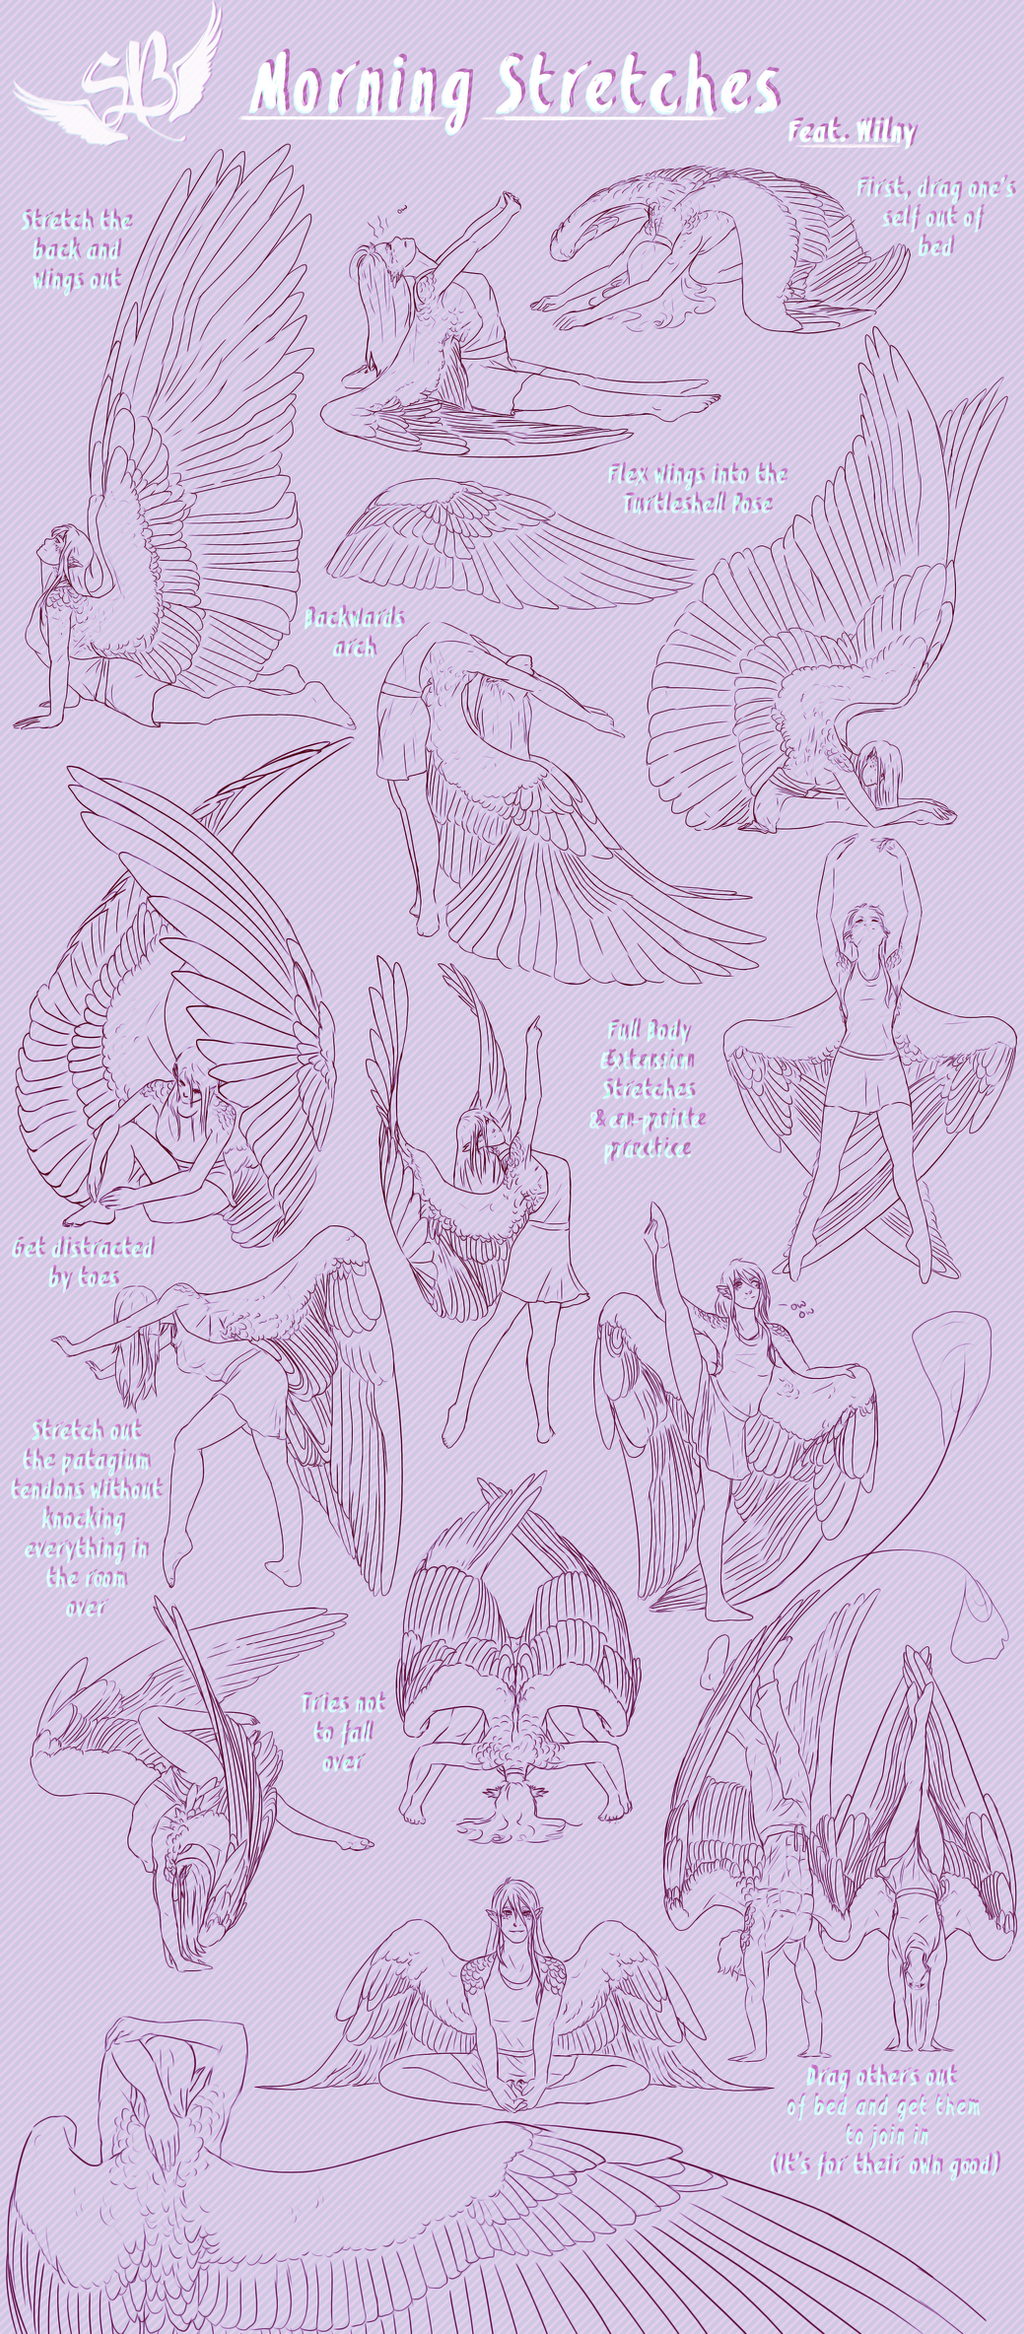 http://img08.deviantart.net/a95b/i/2015/231/a/5/sb__morning_stretches_by_blue_hearts-d96aw9q.png